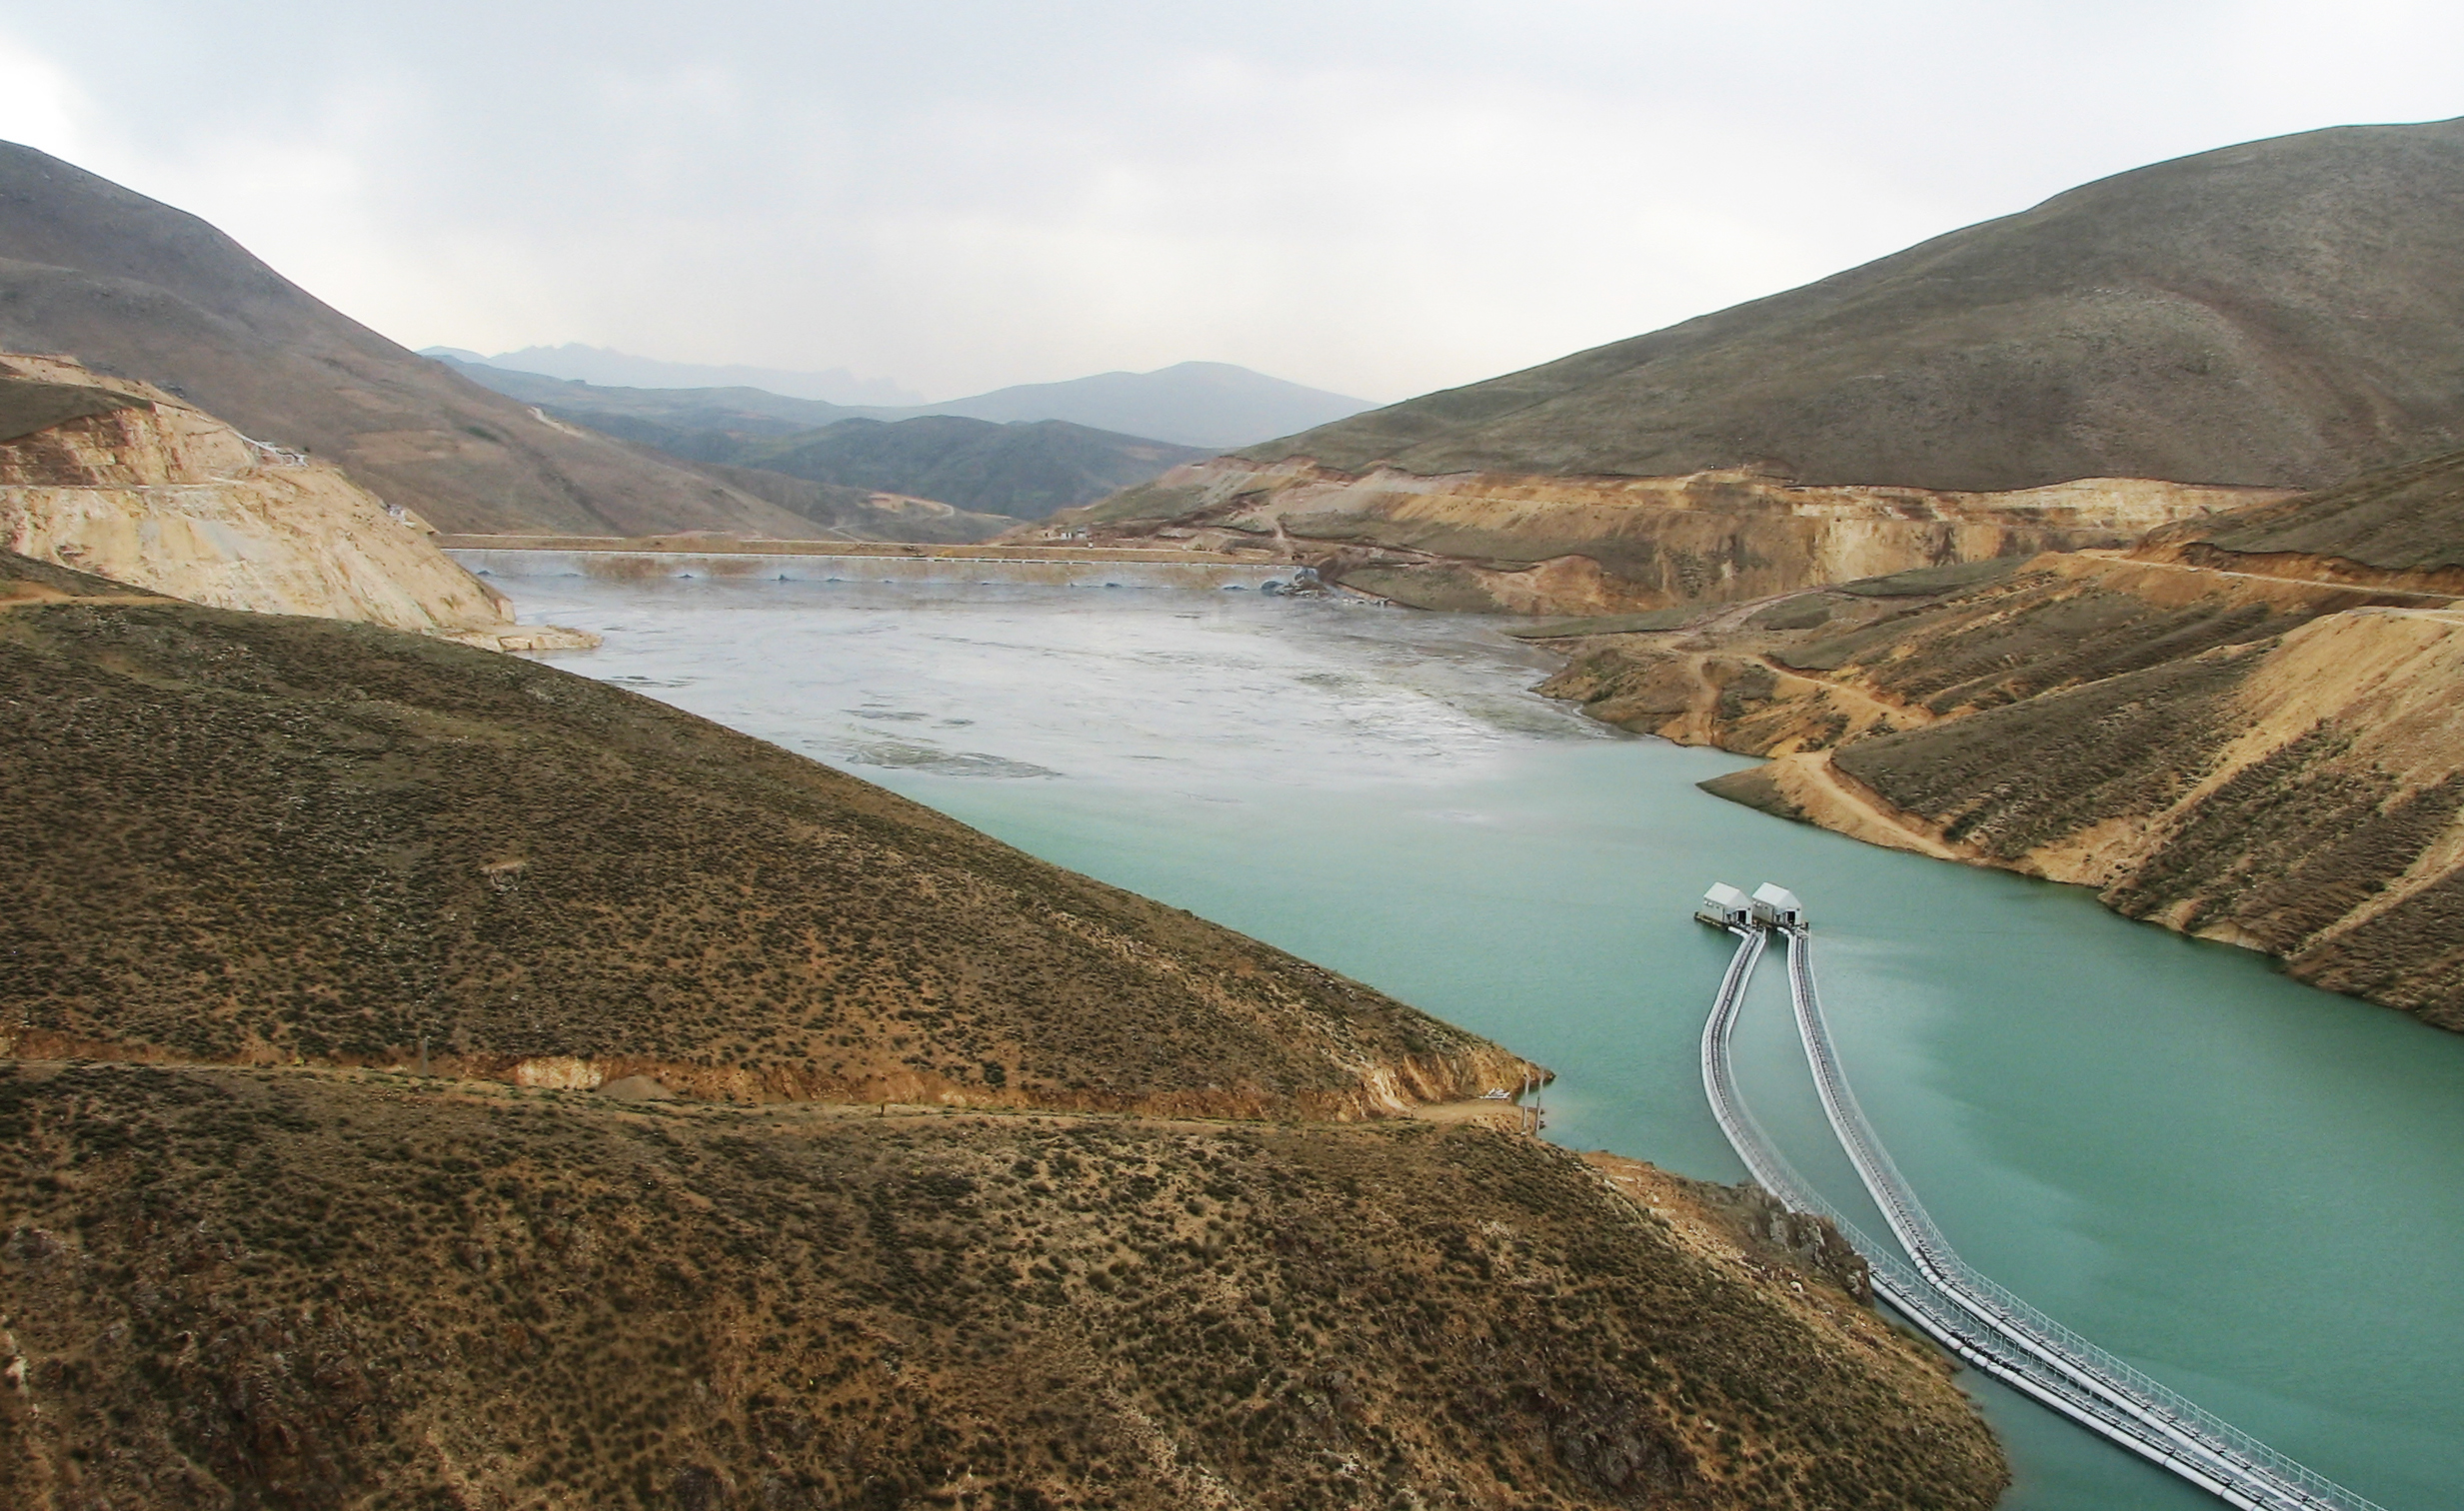 Sungun copper factory`s water supply, pumping installations and tailings disposal and transfer